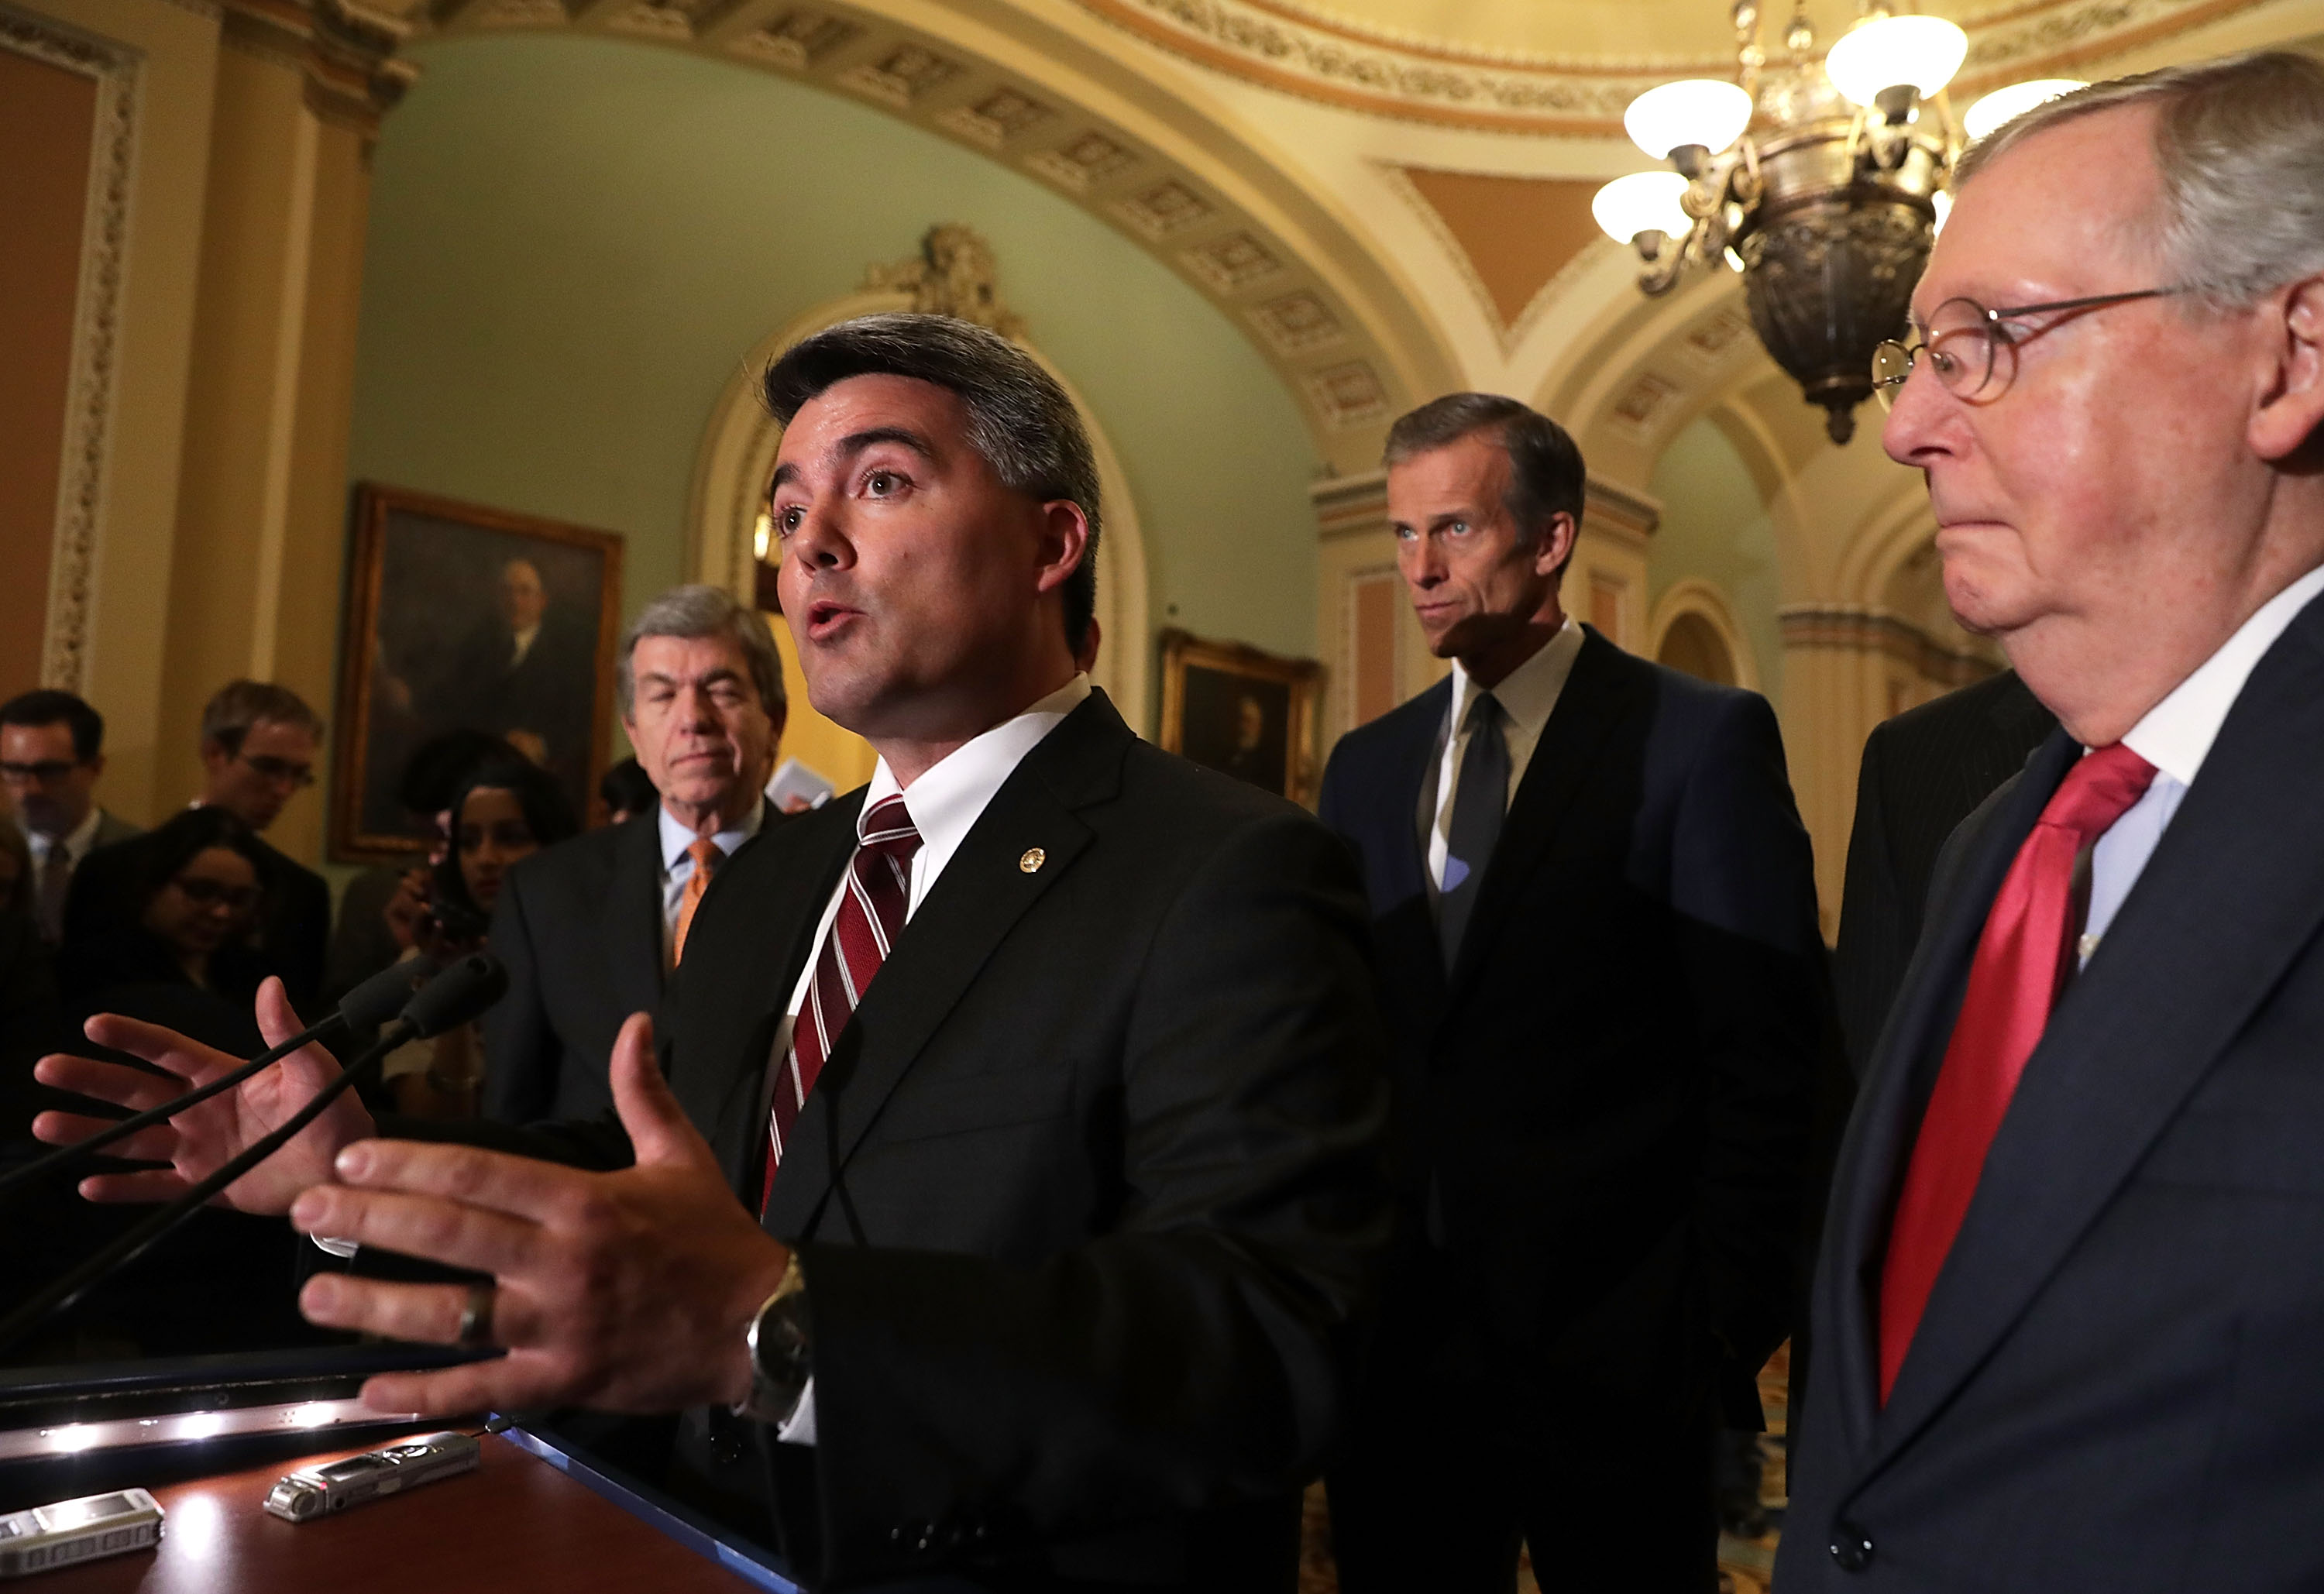 Sen. Cory Gardner (R-CO) speaks to members of the media flanked by Sen. Roy Blunt (R-MO) (L), Sen. John Thune (R-SD) (2nd R) and Senate Majority Leader Sen. Mitch McConnell (R-KY) (R) during a news briefing after the weekly Senate GOP policy luncheon at the Capitol November 16, 2016 in Washington, DC. Senate Republicans gathered at the weekly luncheon to discuss GOP agenda. (Photo by Alex Wong/Getty Images)